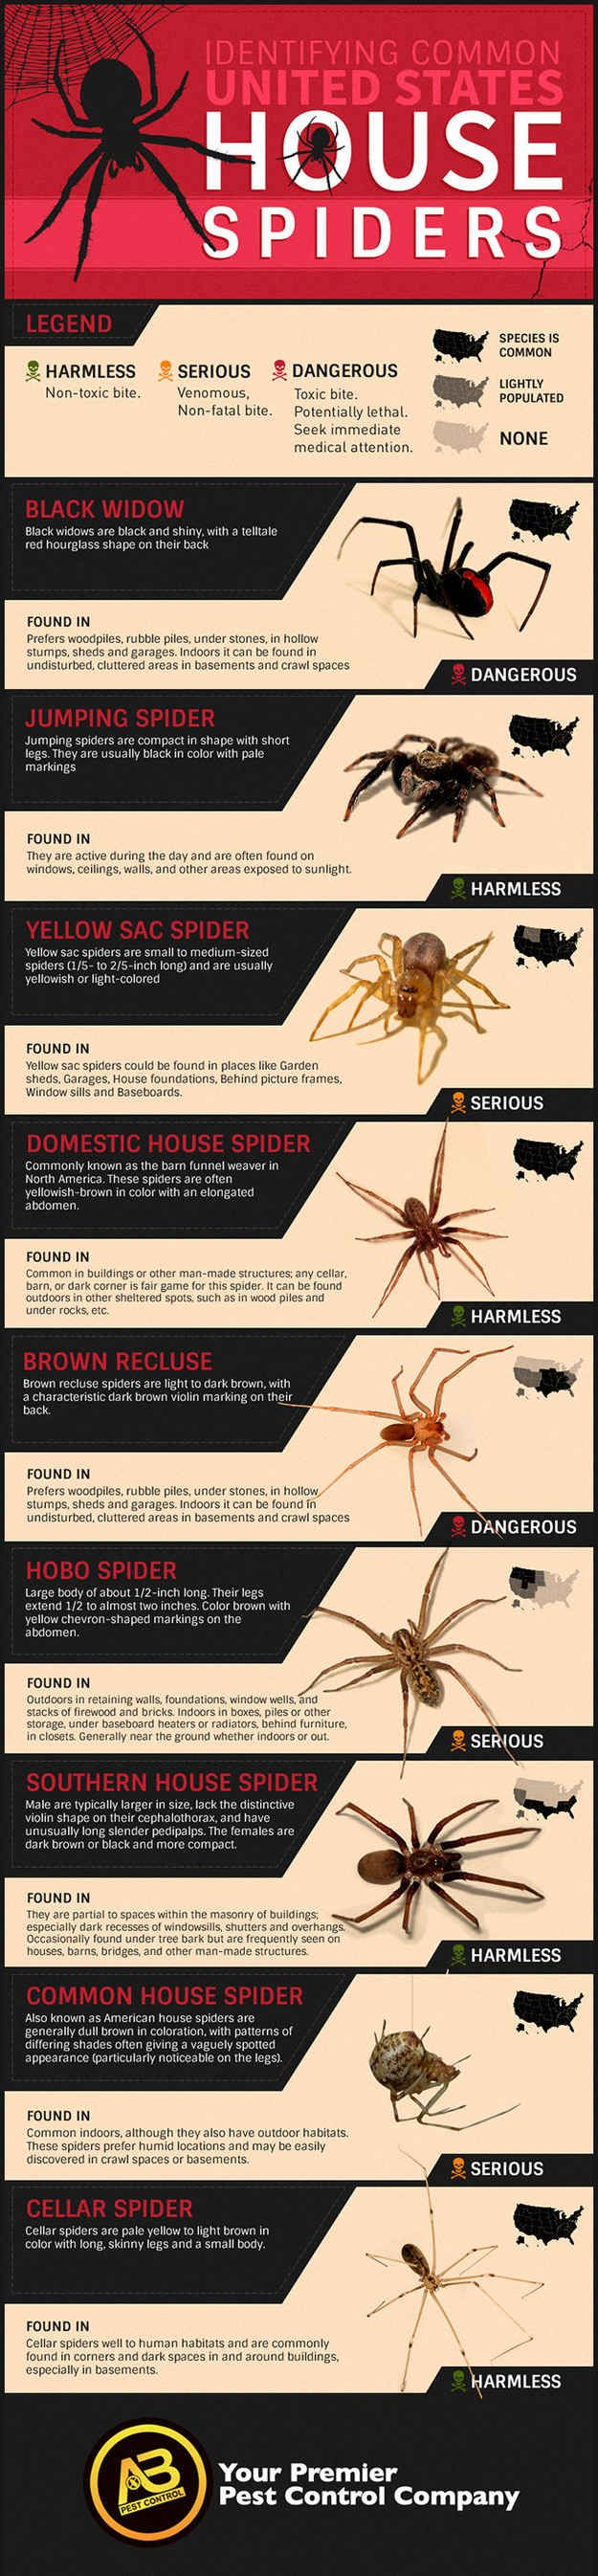 How To Identify Common Poisonous Spiders In Your Home